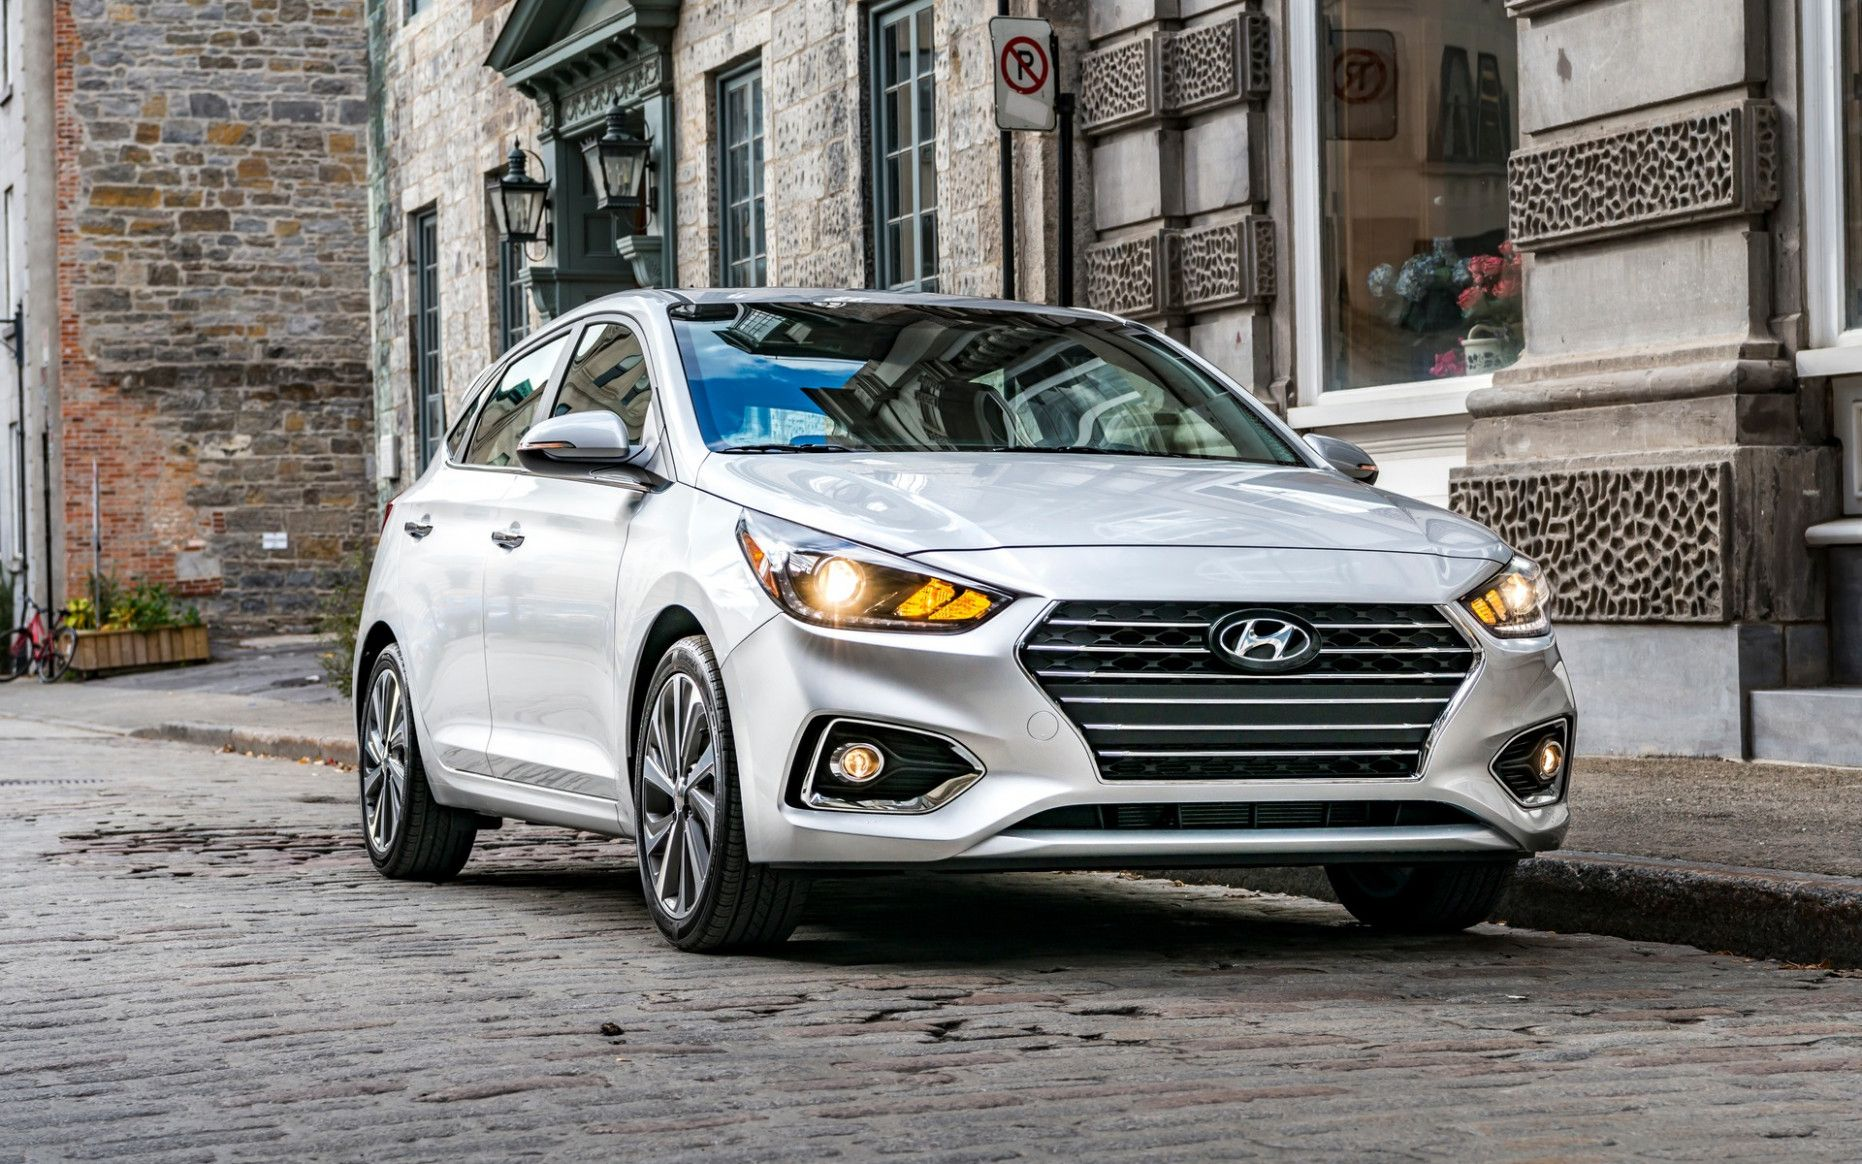 2020 Hyundai Accent in 2020 Hyundai accent, Accent car